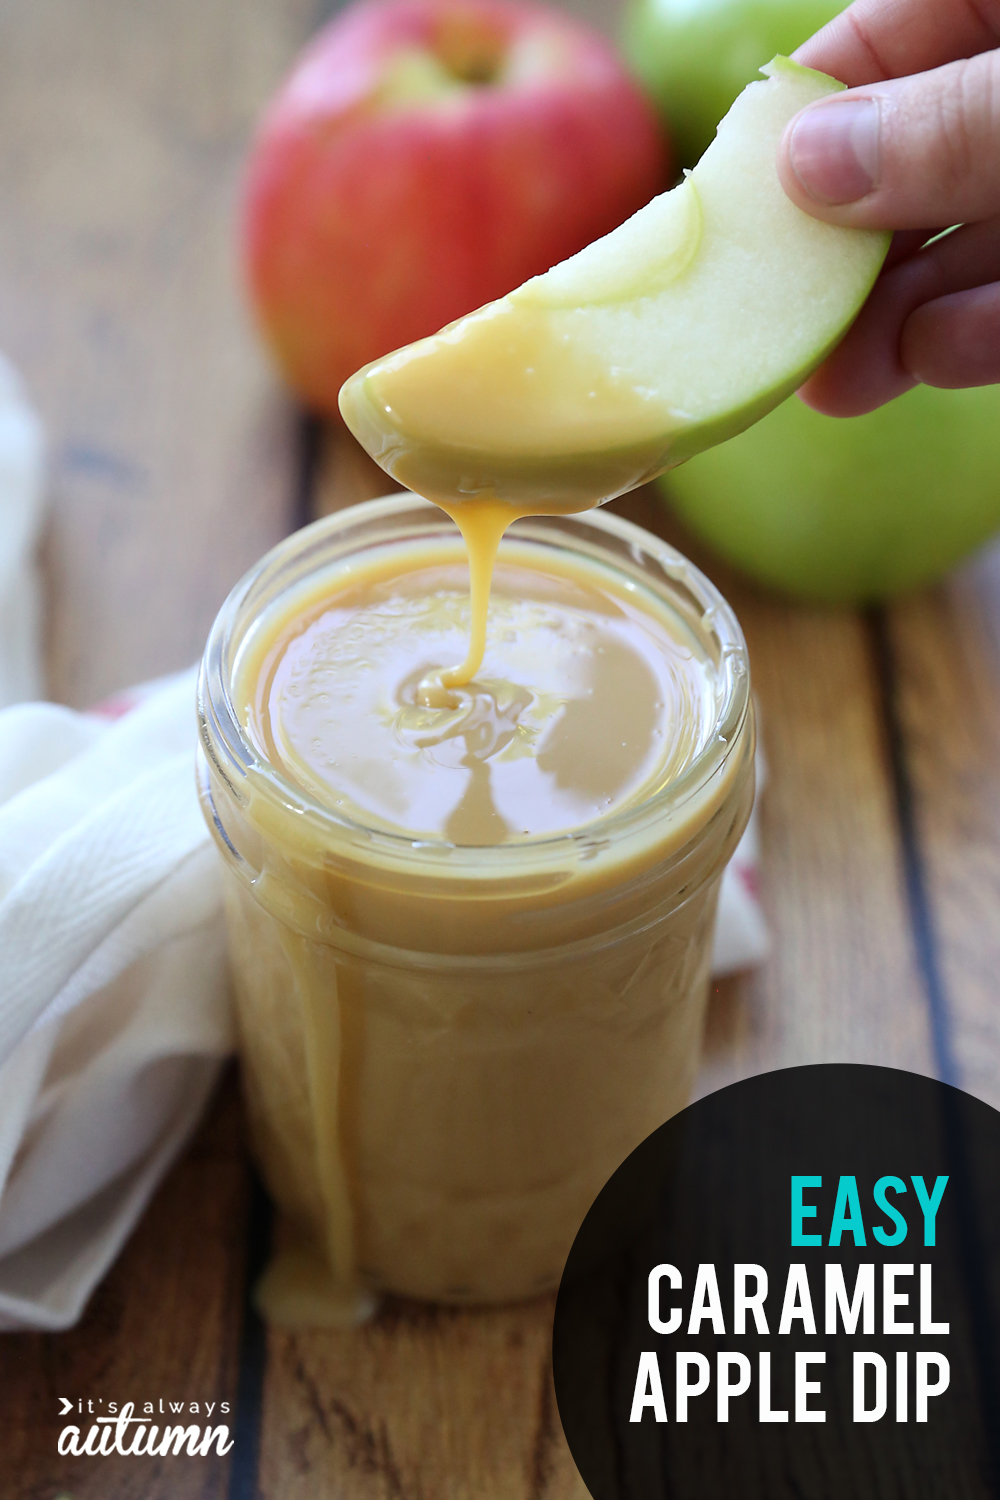 Learn how to make amazing caramel apple dip with just one ingredient!